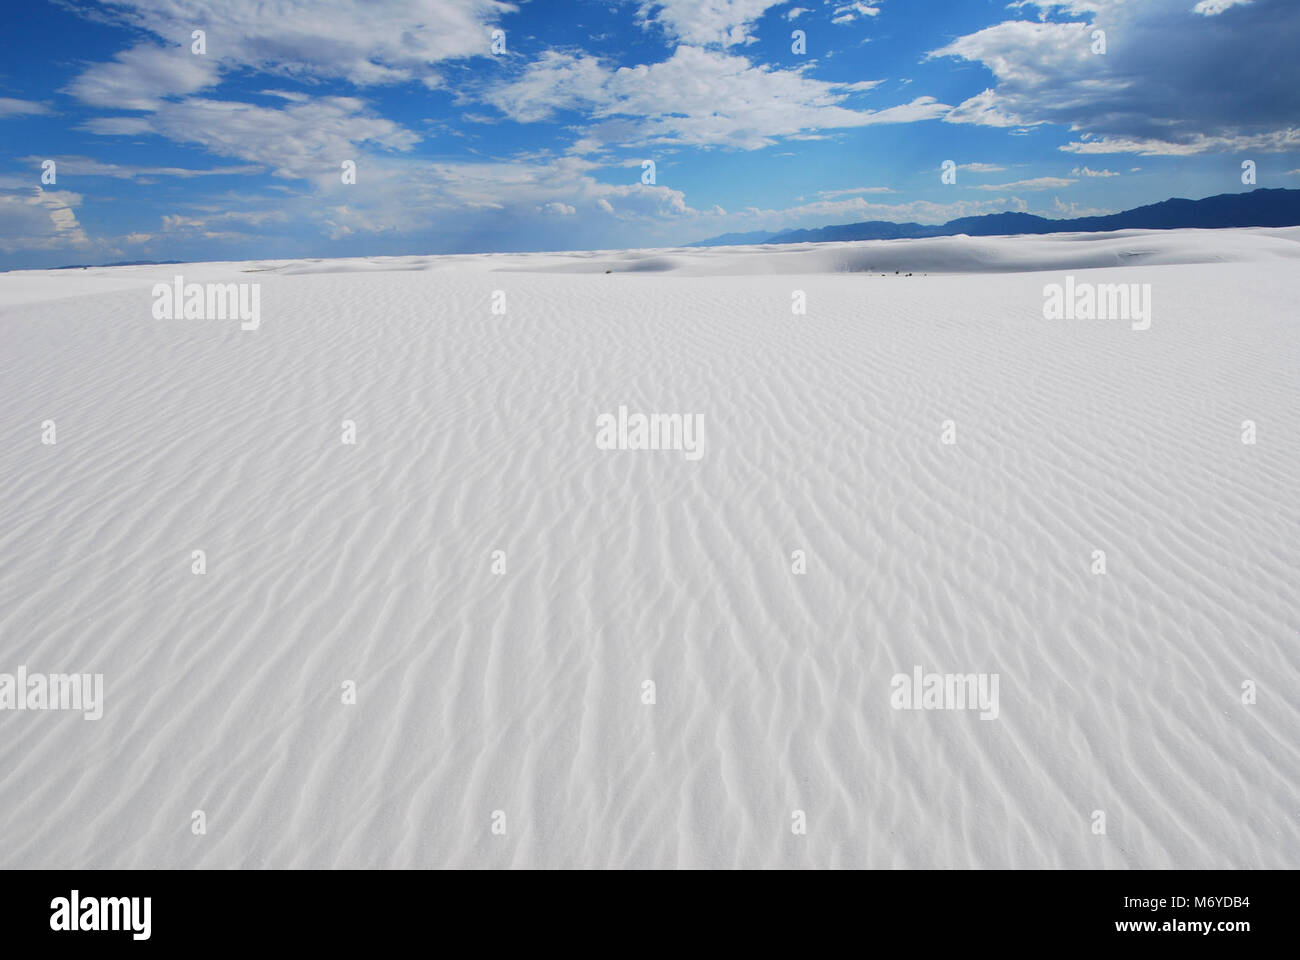 WHSA dunefield heart of the dunes west filmimg area AUG    . - Stock Image